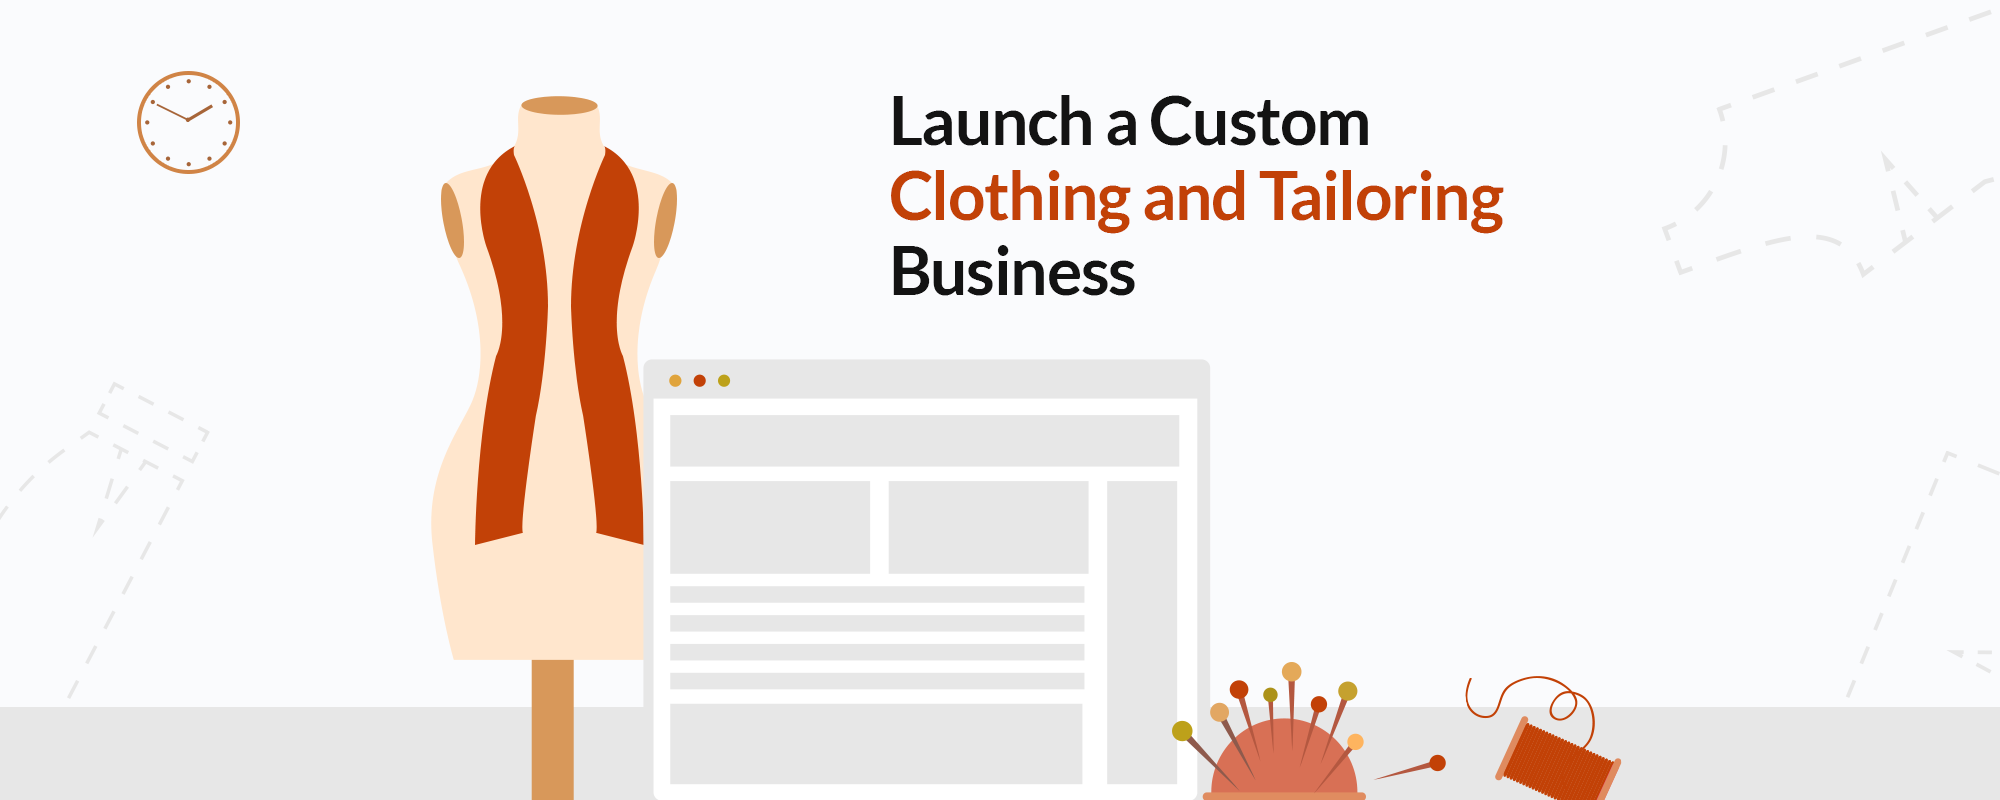 Launch a Custom Clothing and Tailoring Business Website with These Script Features